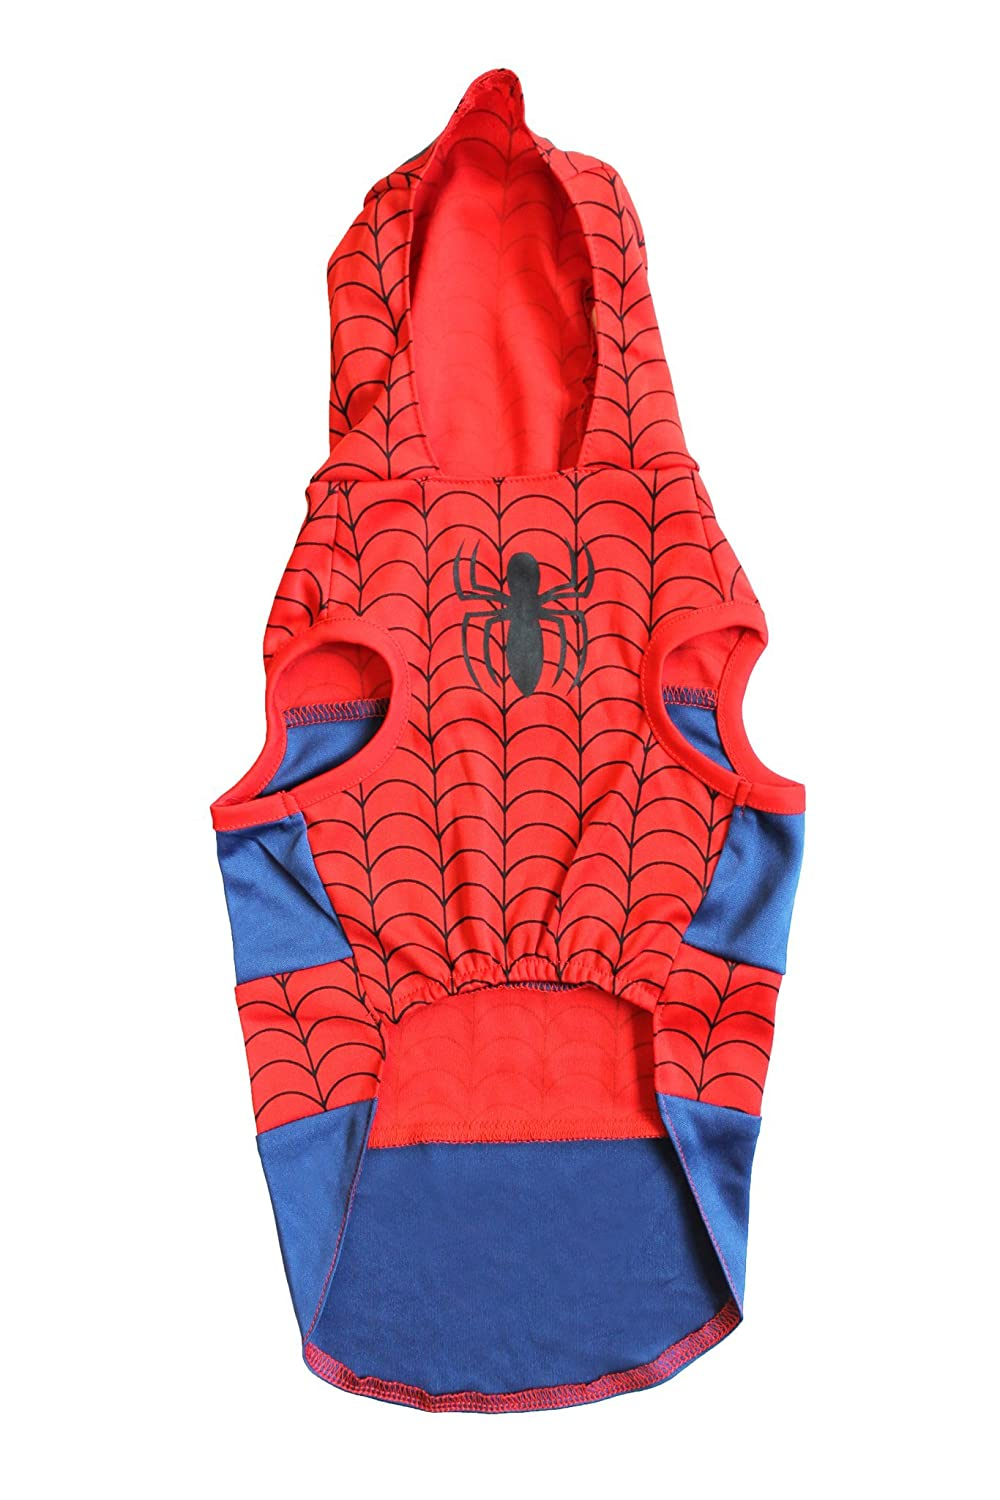 Marvel Spiderman Costume for Dogs, X-Small   Best Superhero Halloween Costume for All Small Dogs and Puppies